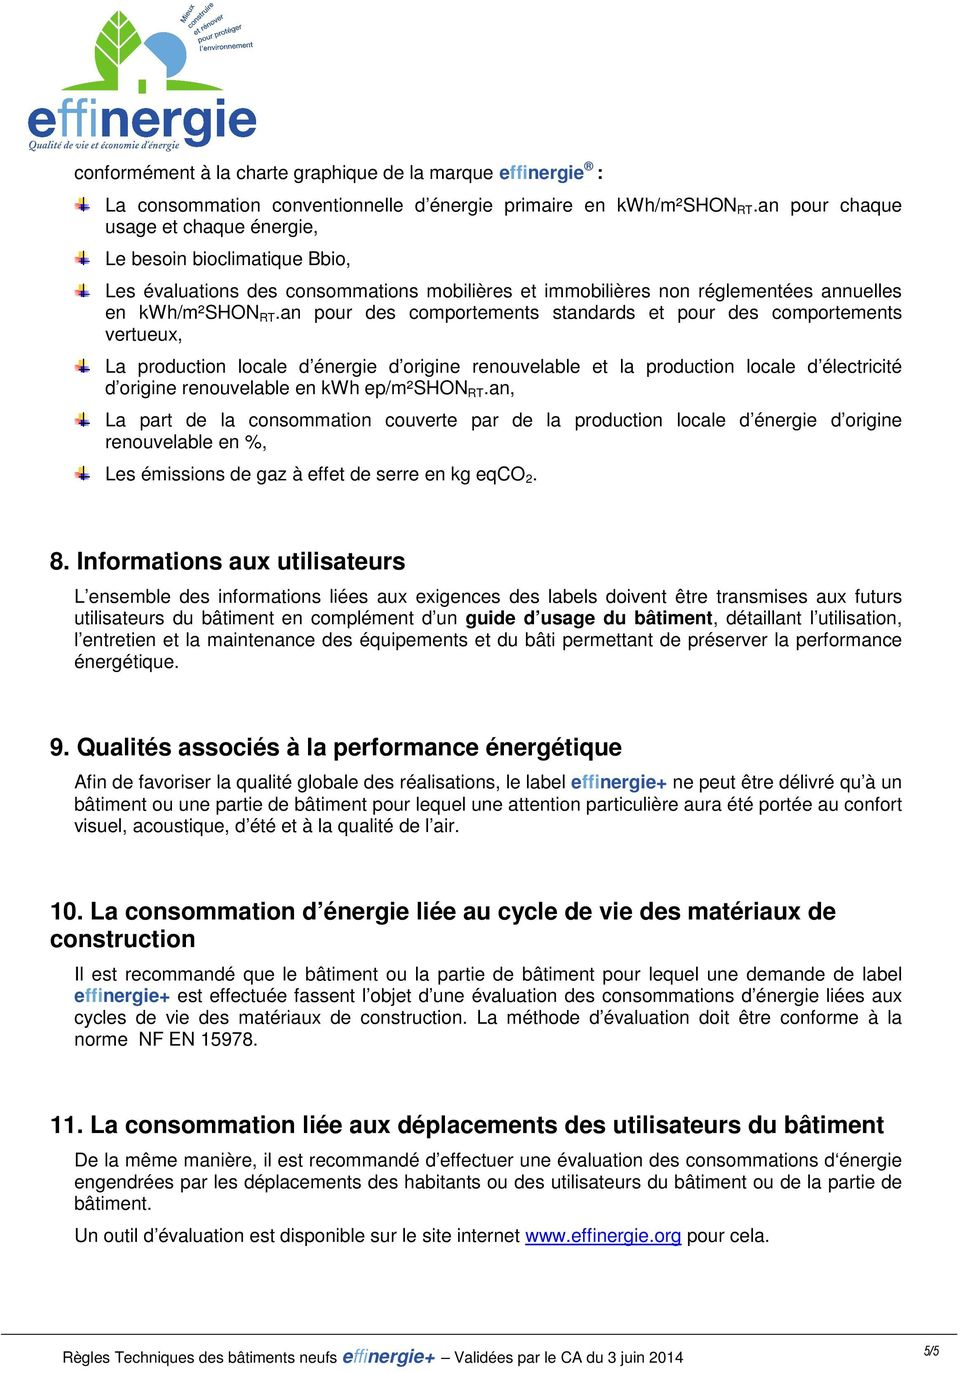 an pur des cmprtements standards et pur des cmprtements vertueux, La prductin lcale d énergie d rigine renuvelable et la prductin lcale d électricité d rigine renuvelable en kwh ep/m²shon RT.